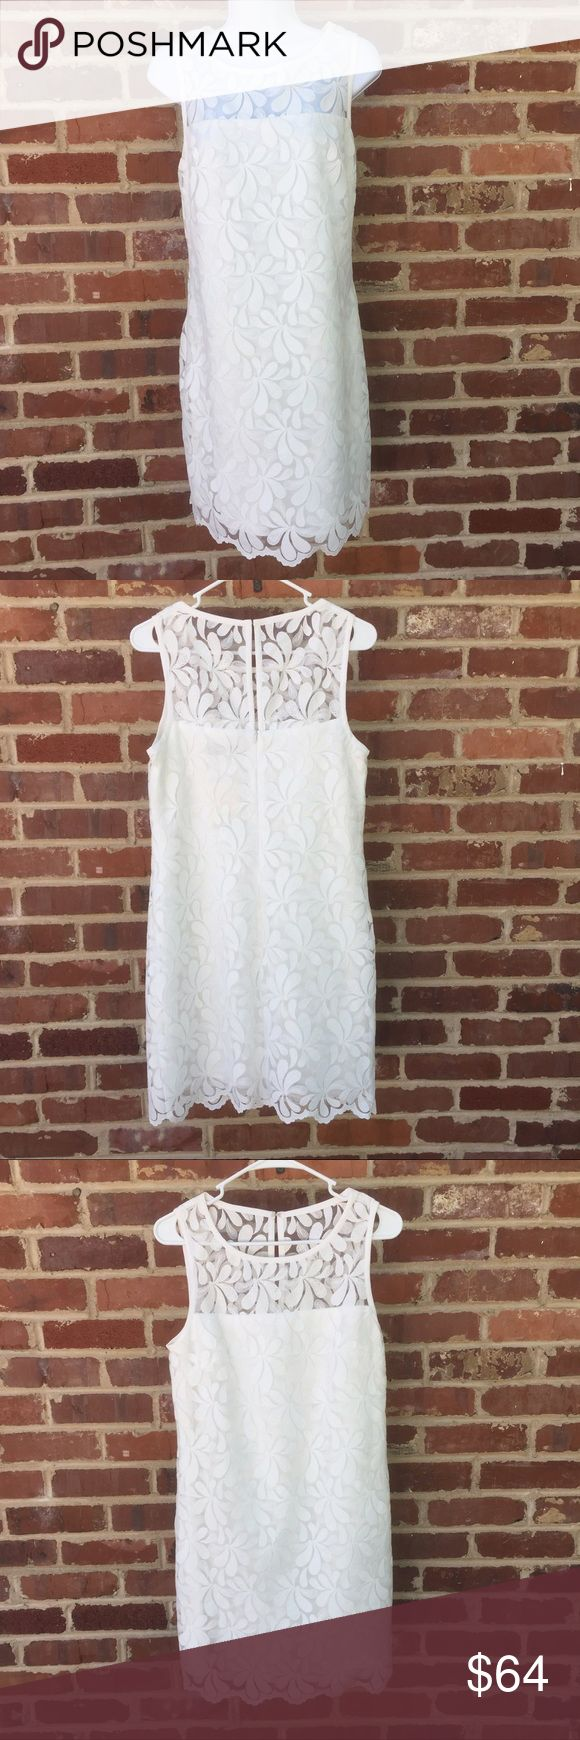 """Trina Turk White Sheath Dress Size 6 Trina Turk Dress •White shift with a white on white floral overlay •Size 6 •Brand new with tags •approx: 35"""" long; 16.5"""" across armpits Trina Turk Dresses Mini"""